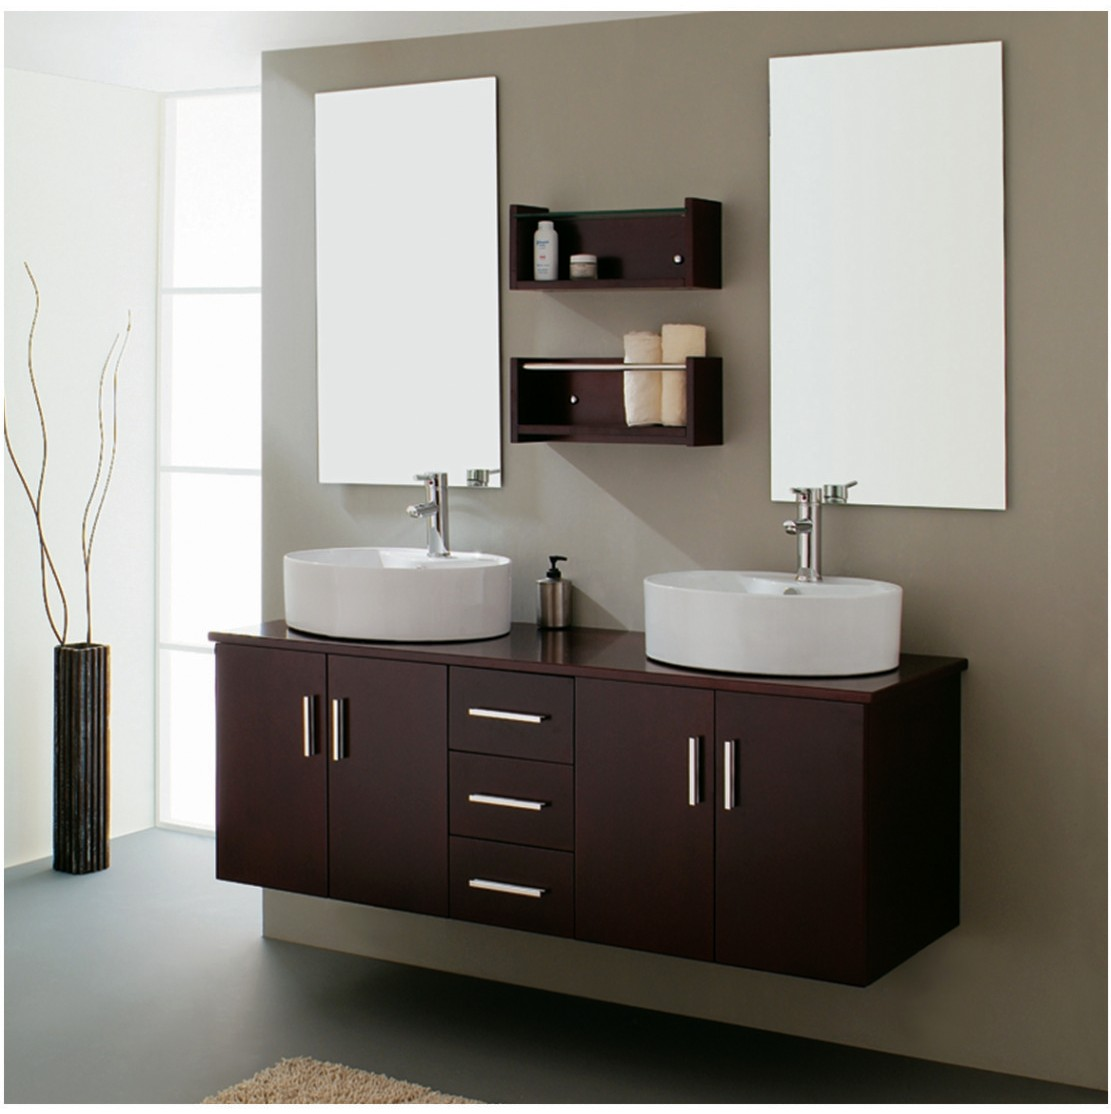 Double sink bathroom decorating ideas 2017 2018 best cars reviews - Modern bathroom decorations ...